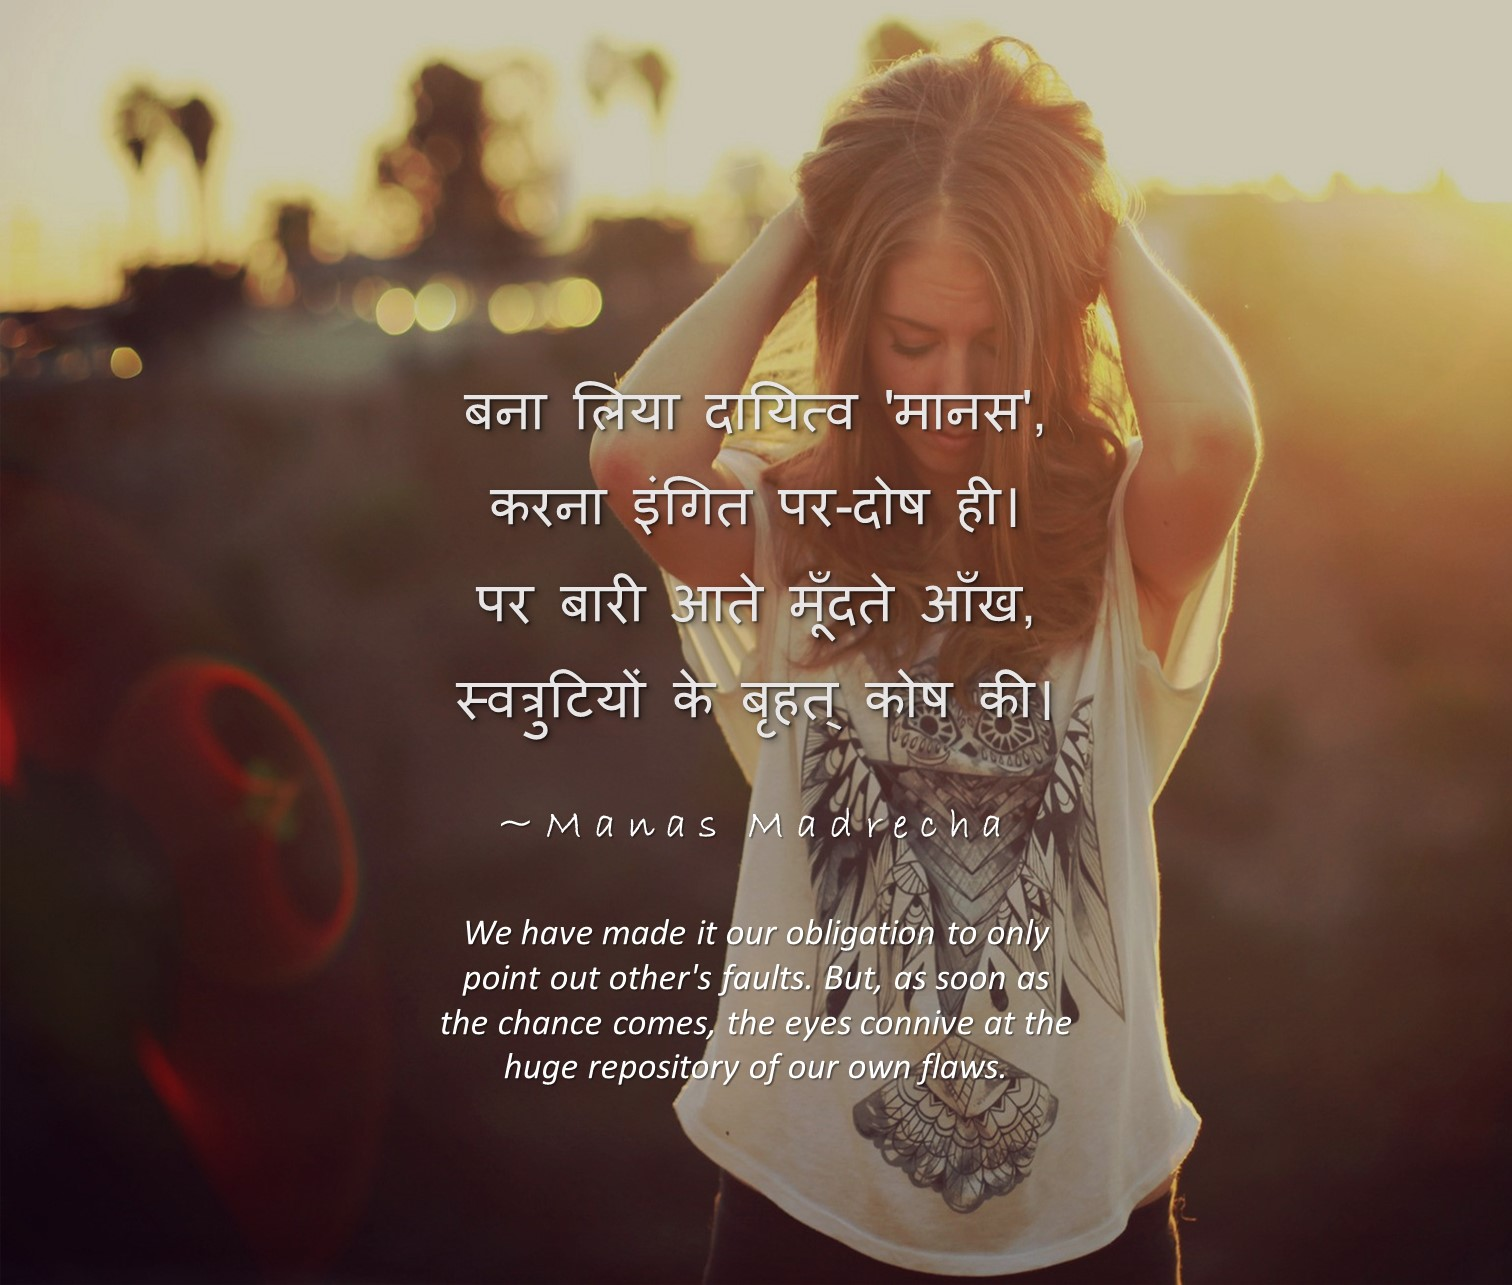 First talk about your self - Hindi Poem | Manas Madrecha